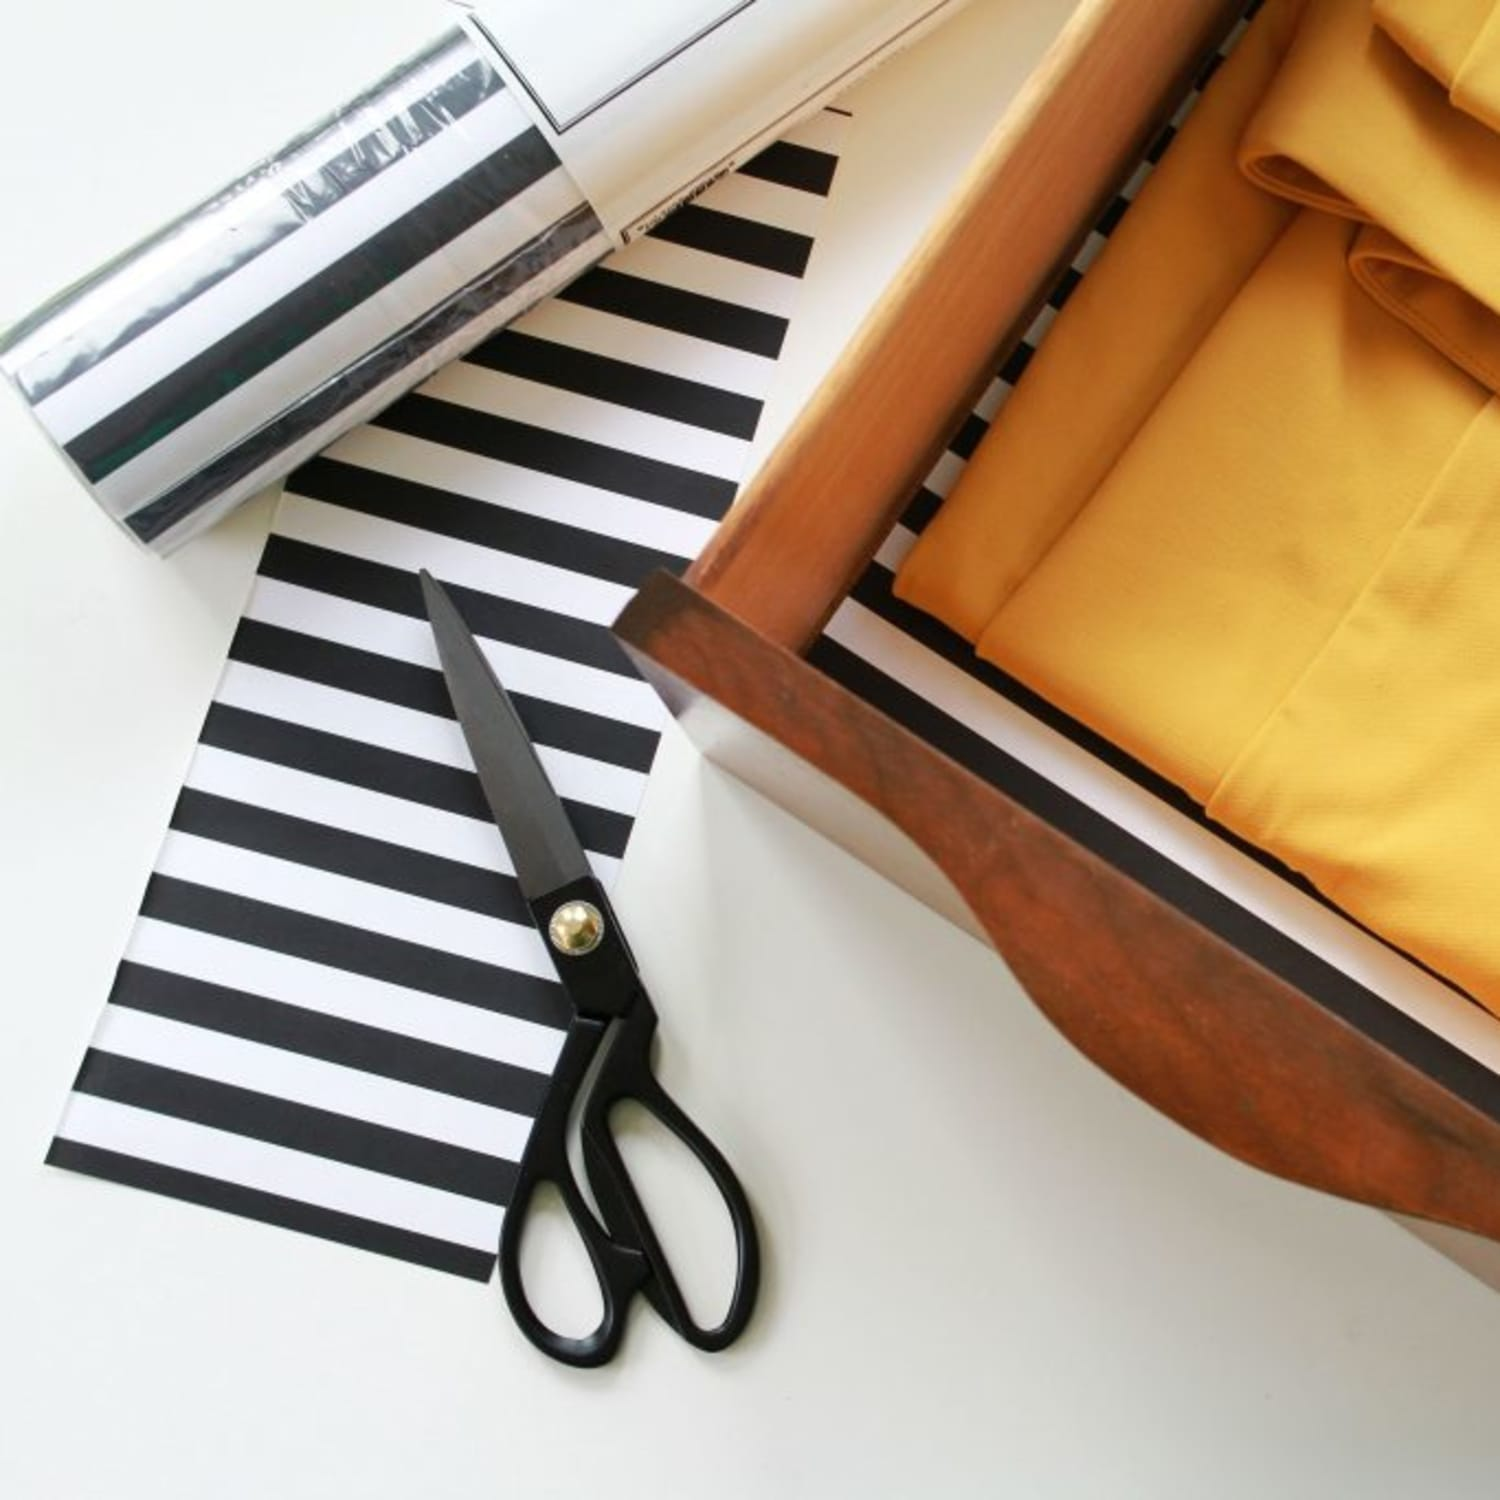 How To Install Scented Drawer Liners Apartment Therapy